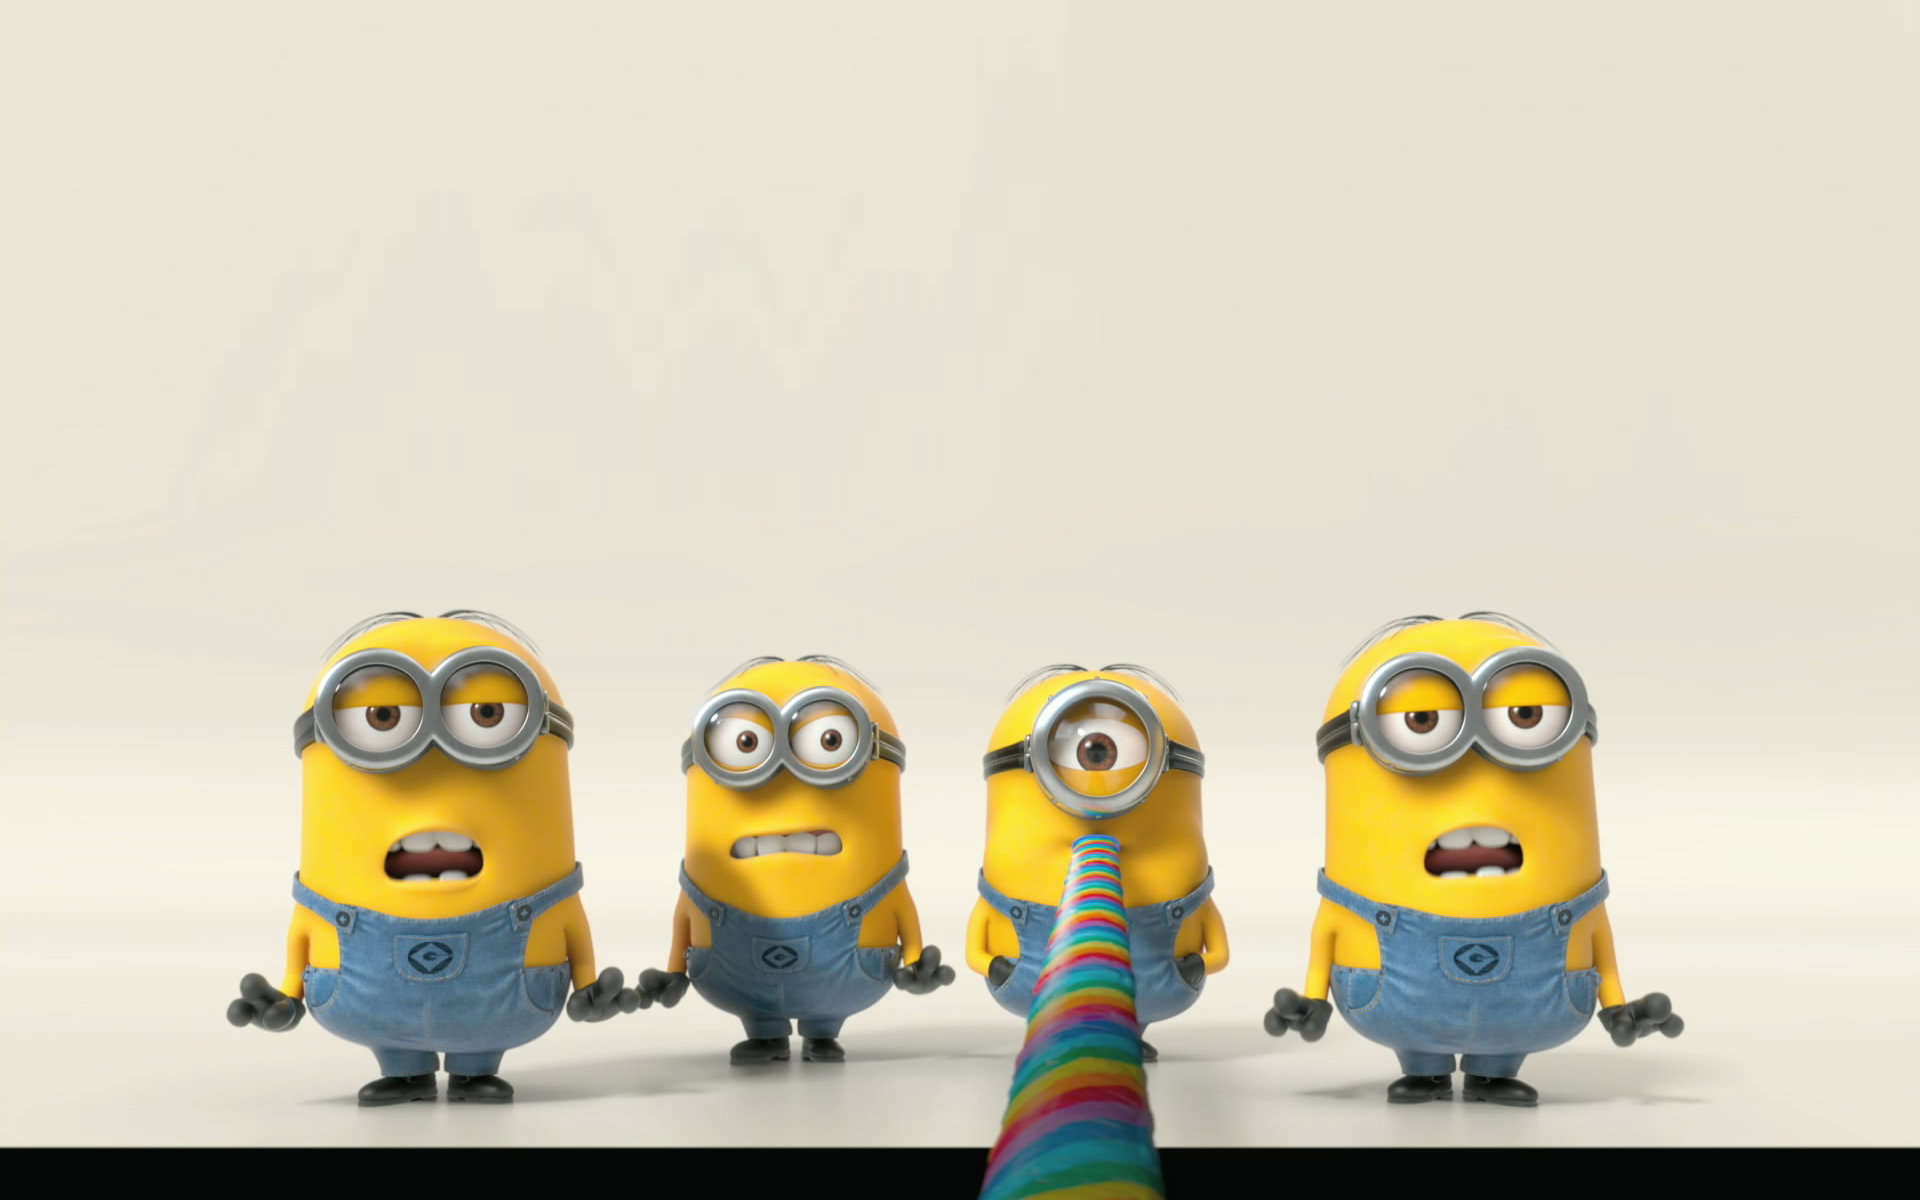 Amazing-minions-and-mobile-minions-wallpaper-wpc5802063